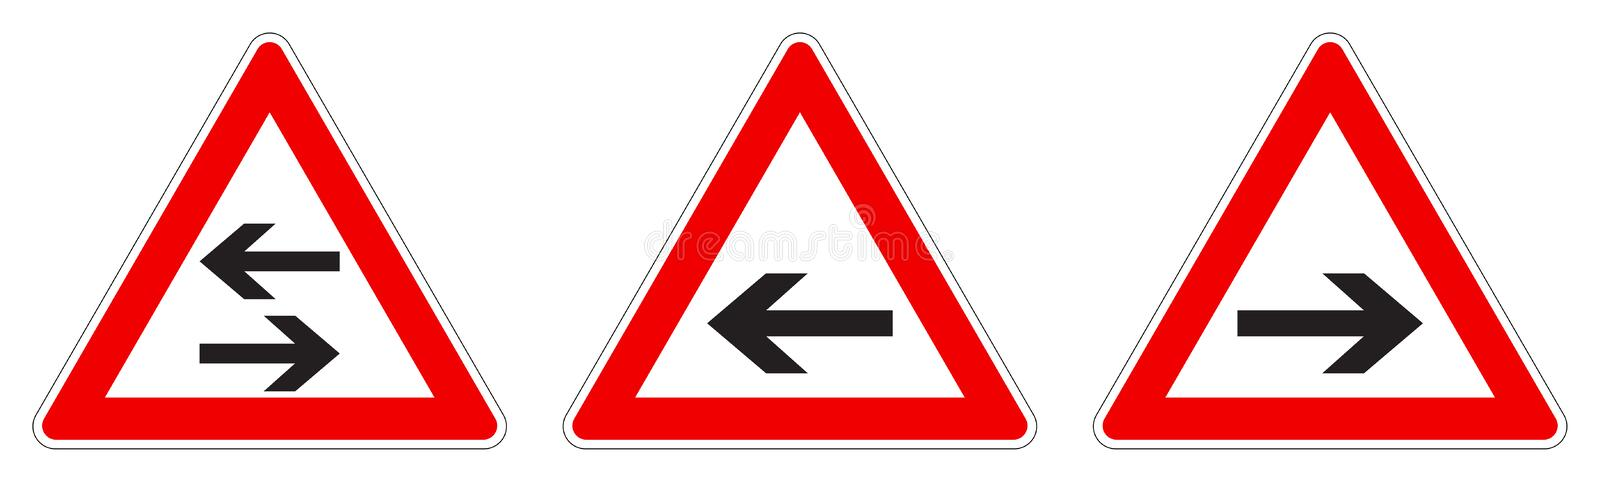 Warning - single/two way traffic sign. Black arrow in red triangle, version with arrow pointing left, right and both ways stock illustration